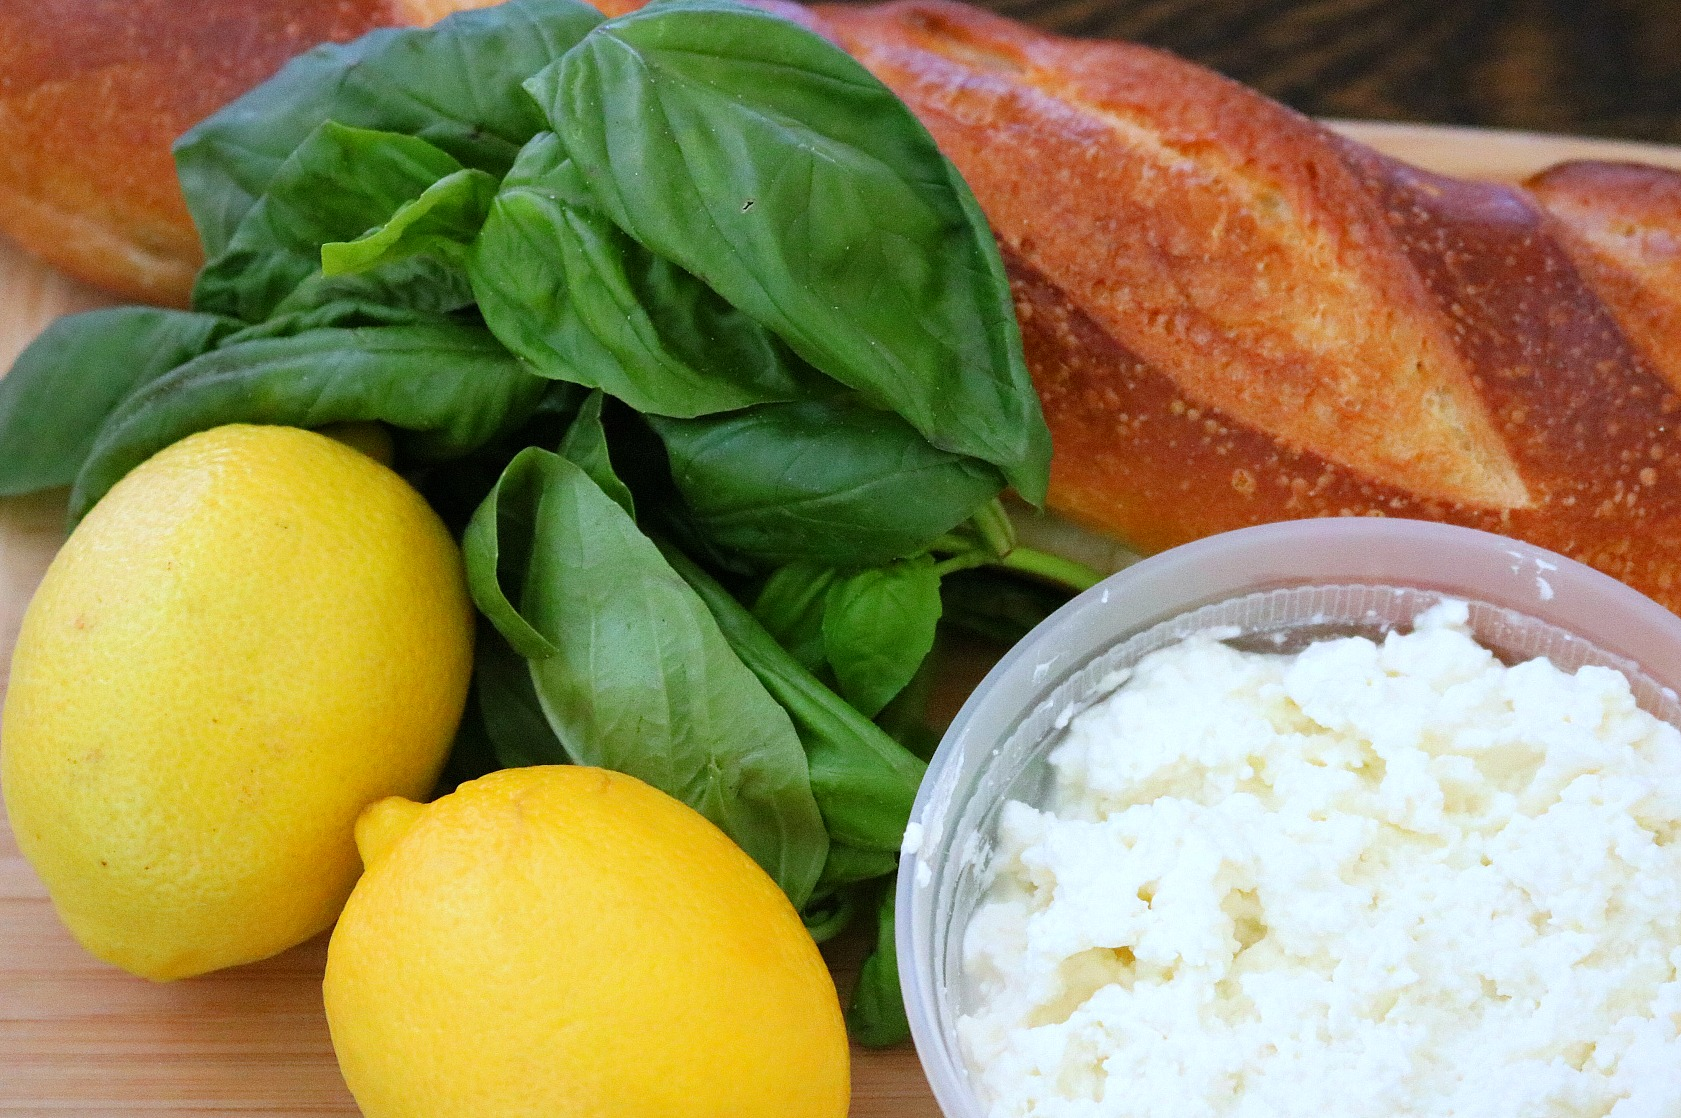 Lemon Basil Ricotta Crostini - with only 4 main ingredients, this is a must make appetizer for your next dinner party ~ www.mangiamichelle.com